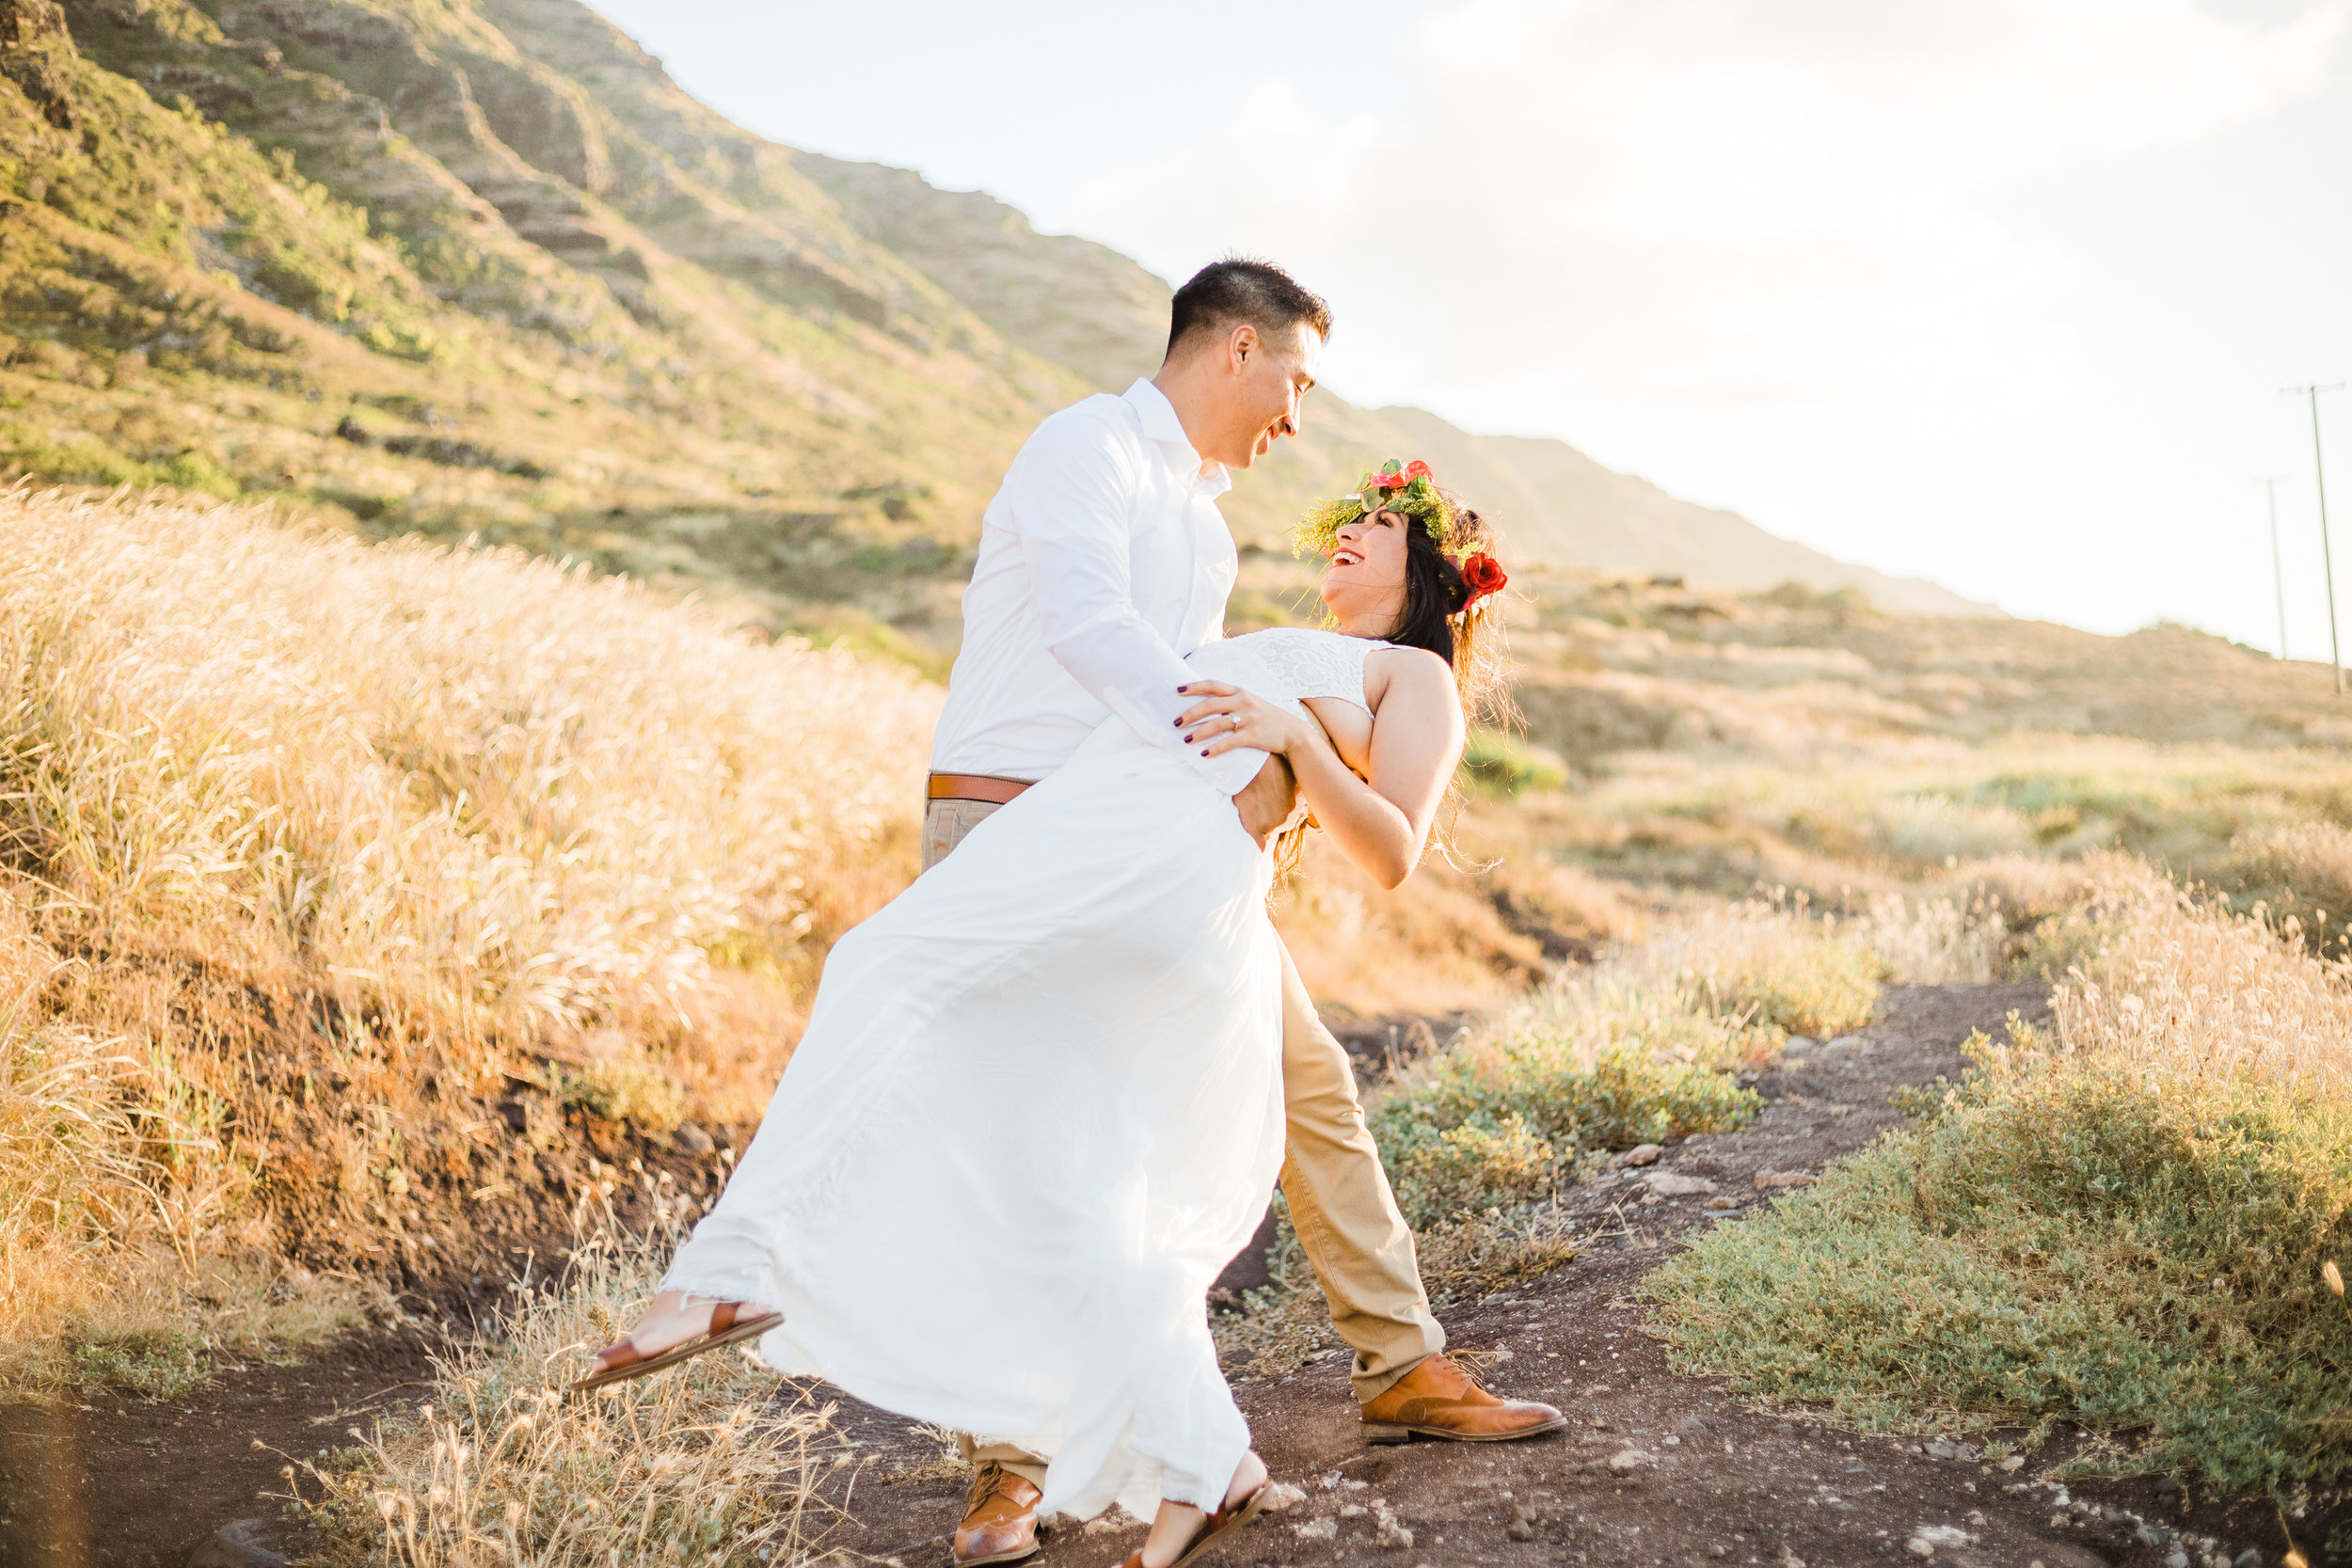 intimate-elopement-sunset-oahu-haku-13.jpg